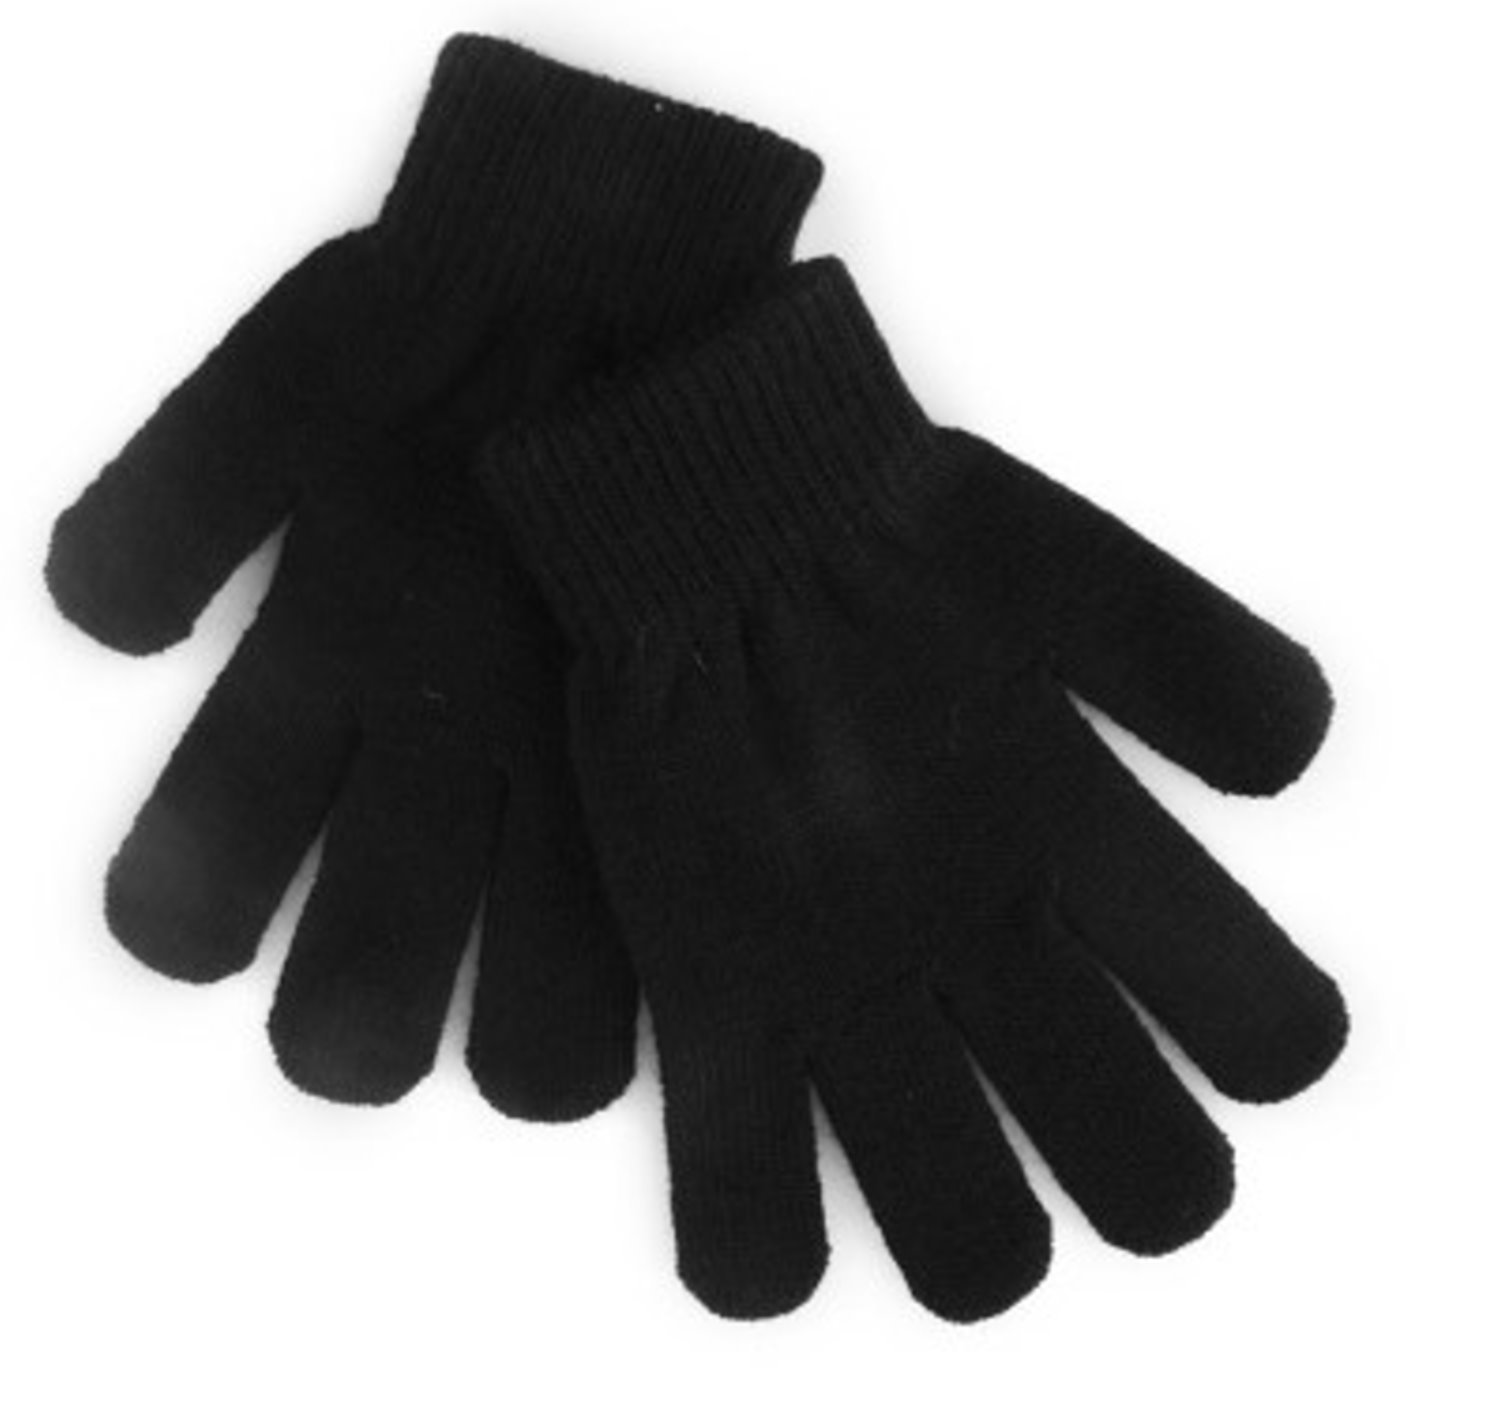 Childrens black leather gloves - 12 Pairs Childrens Black Magic Winter Gloves One Size